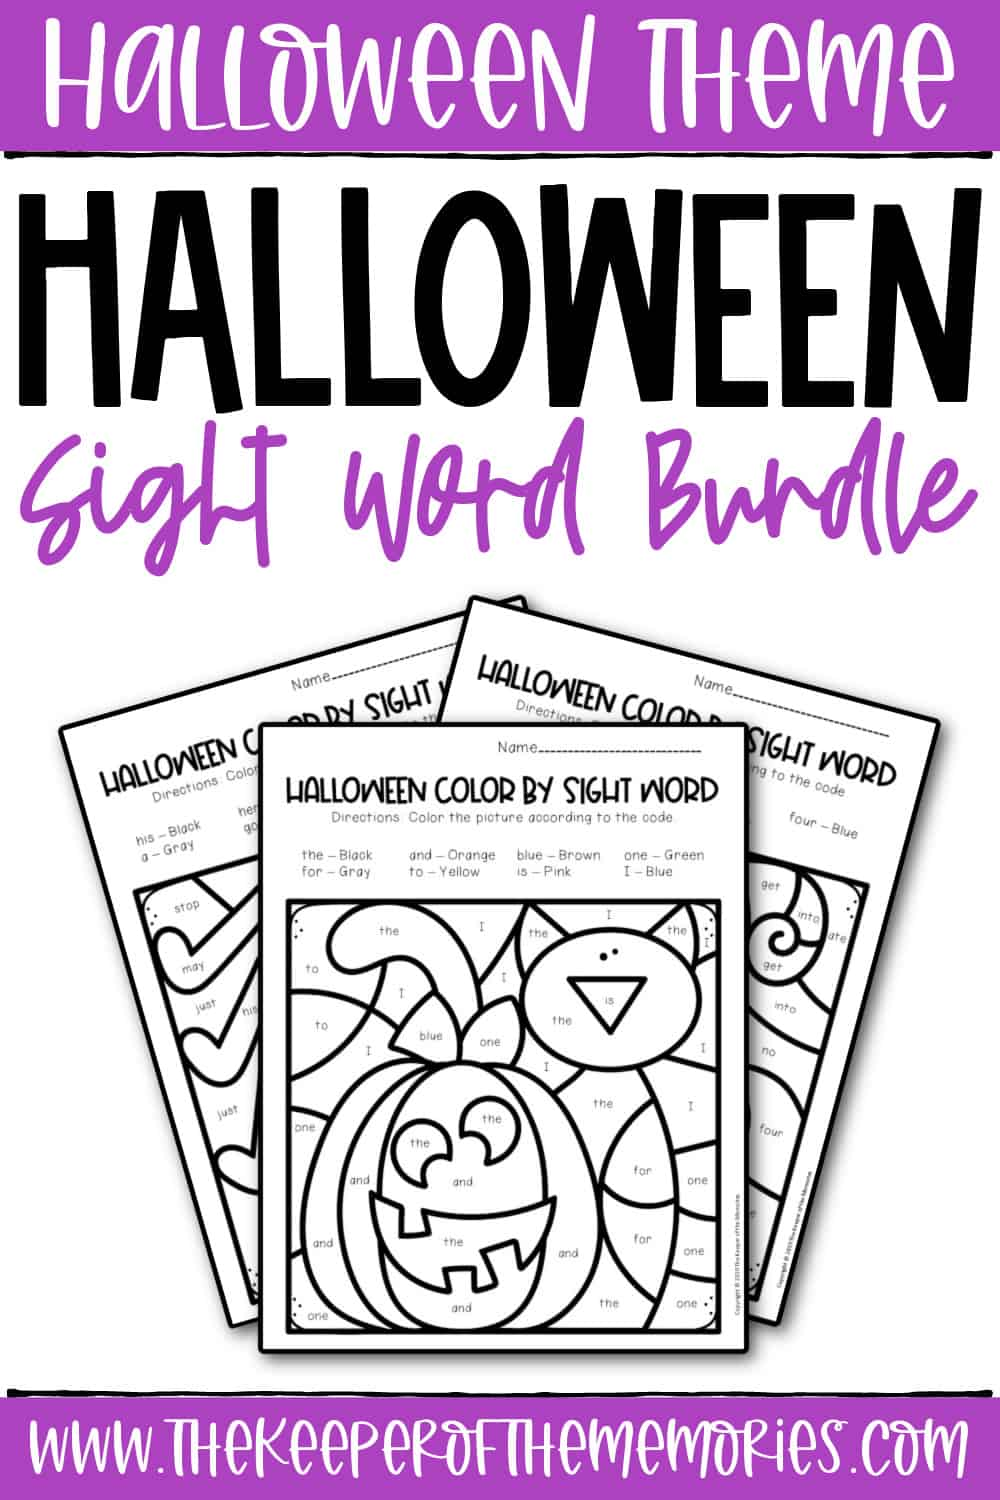 Color by Sight Word Halloween Worksheets Bundle